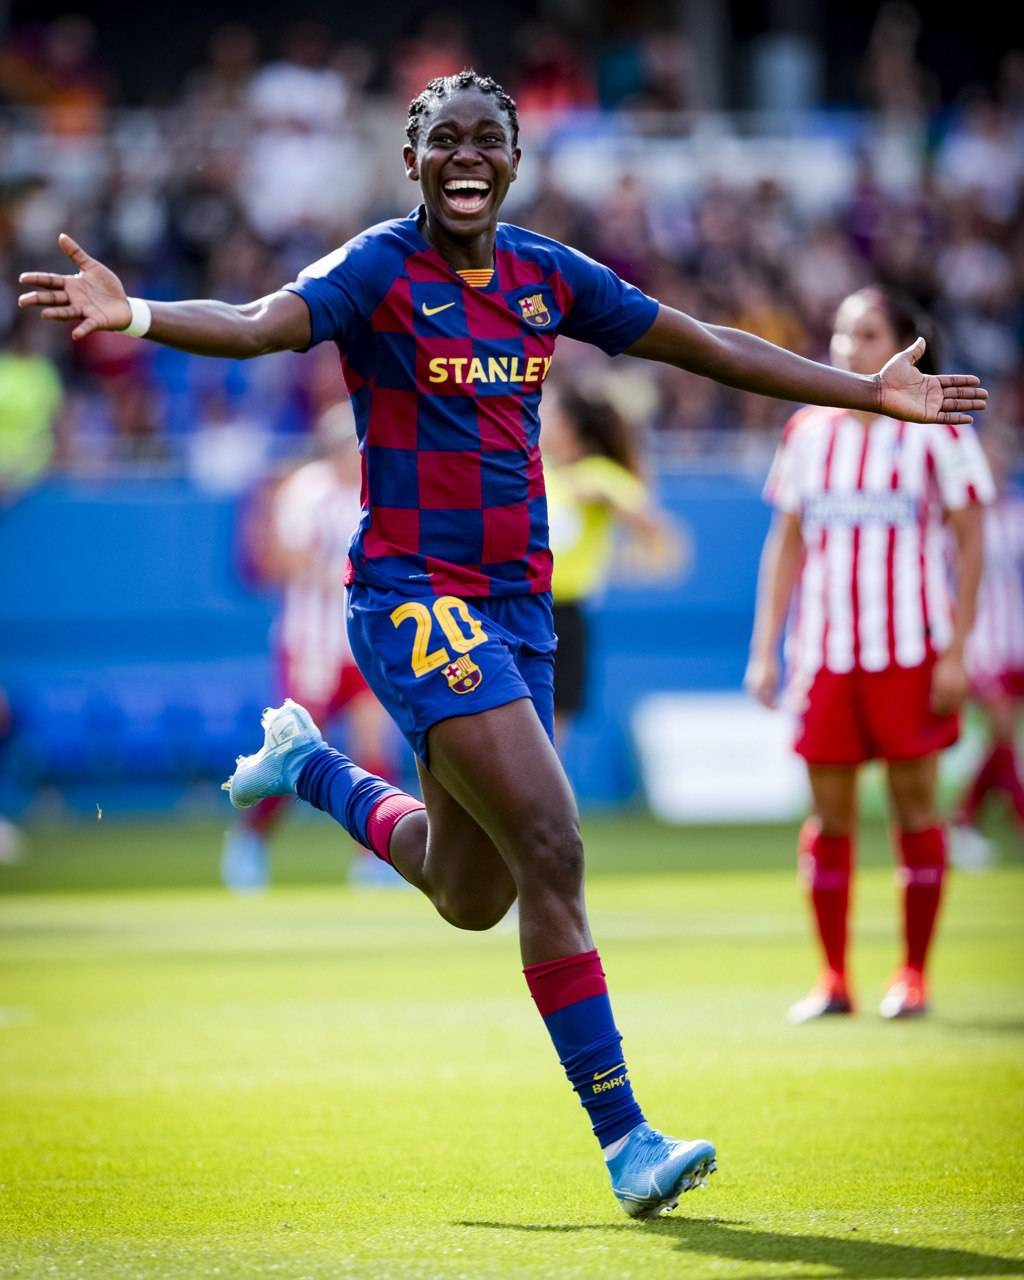 Liga Iberdola: Oshoala On Target In Barcelona Away Win Against Sevilla